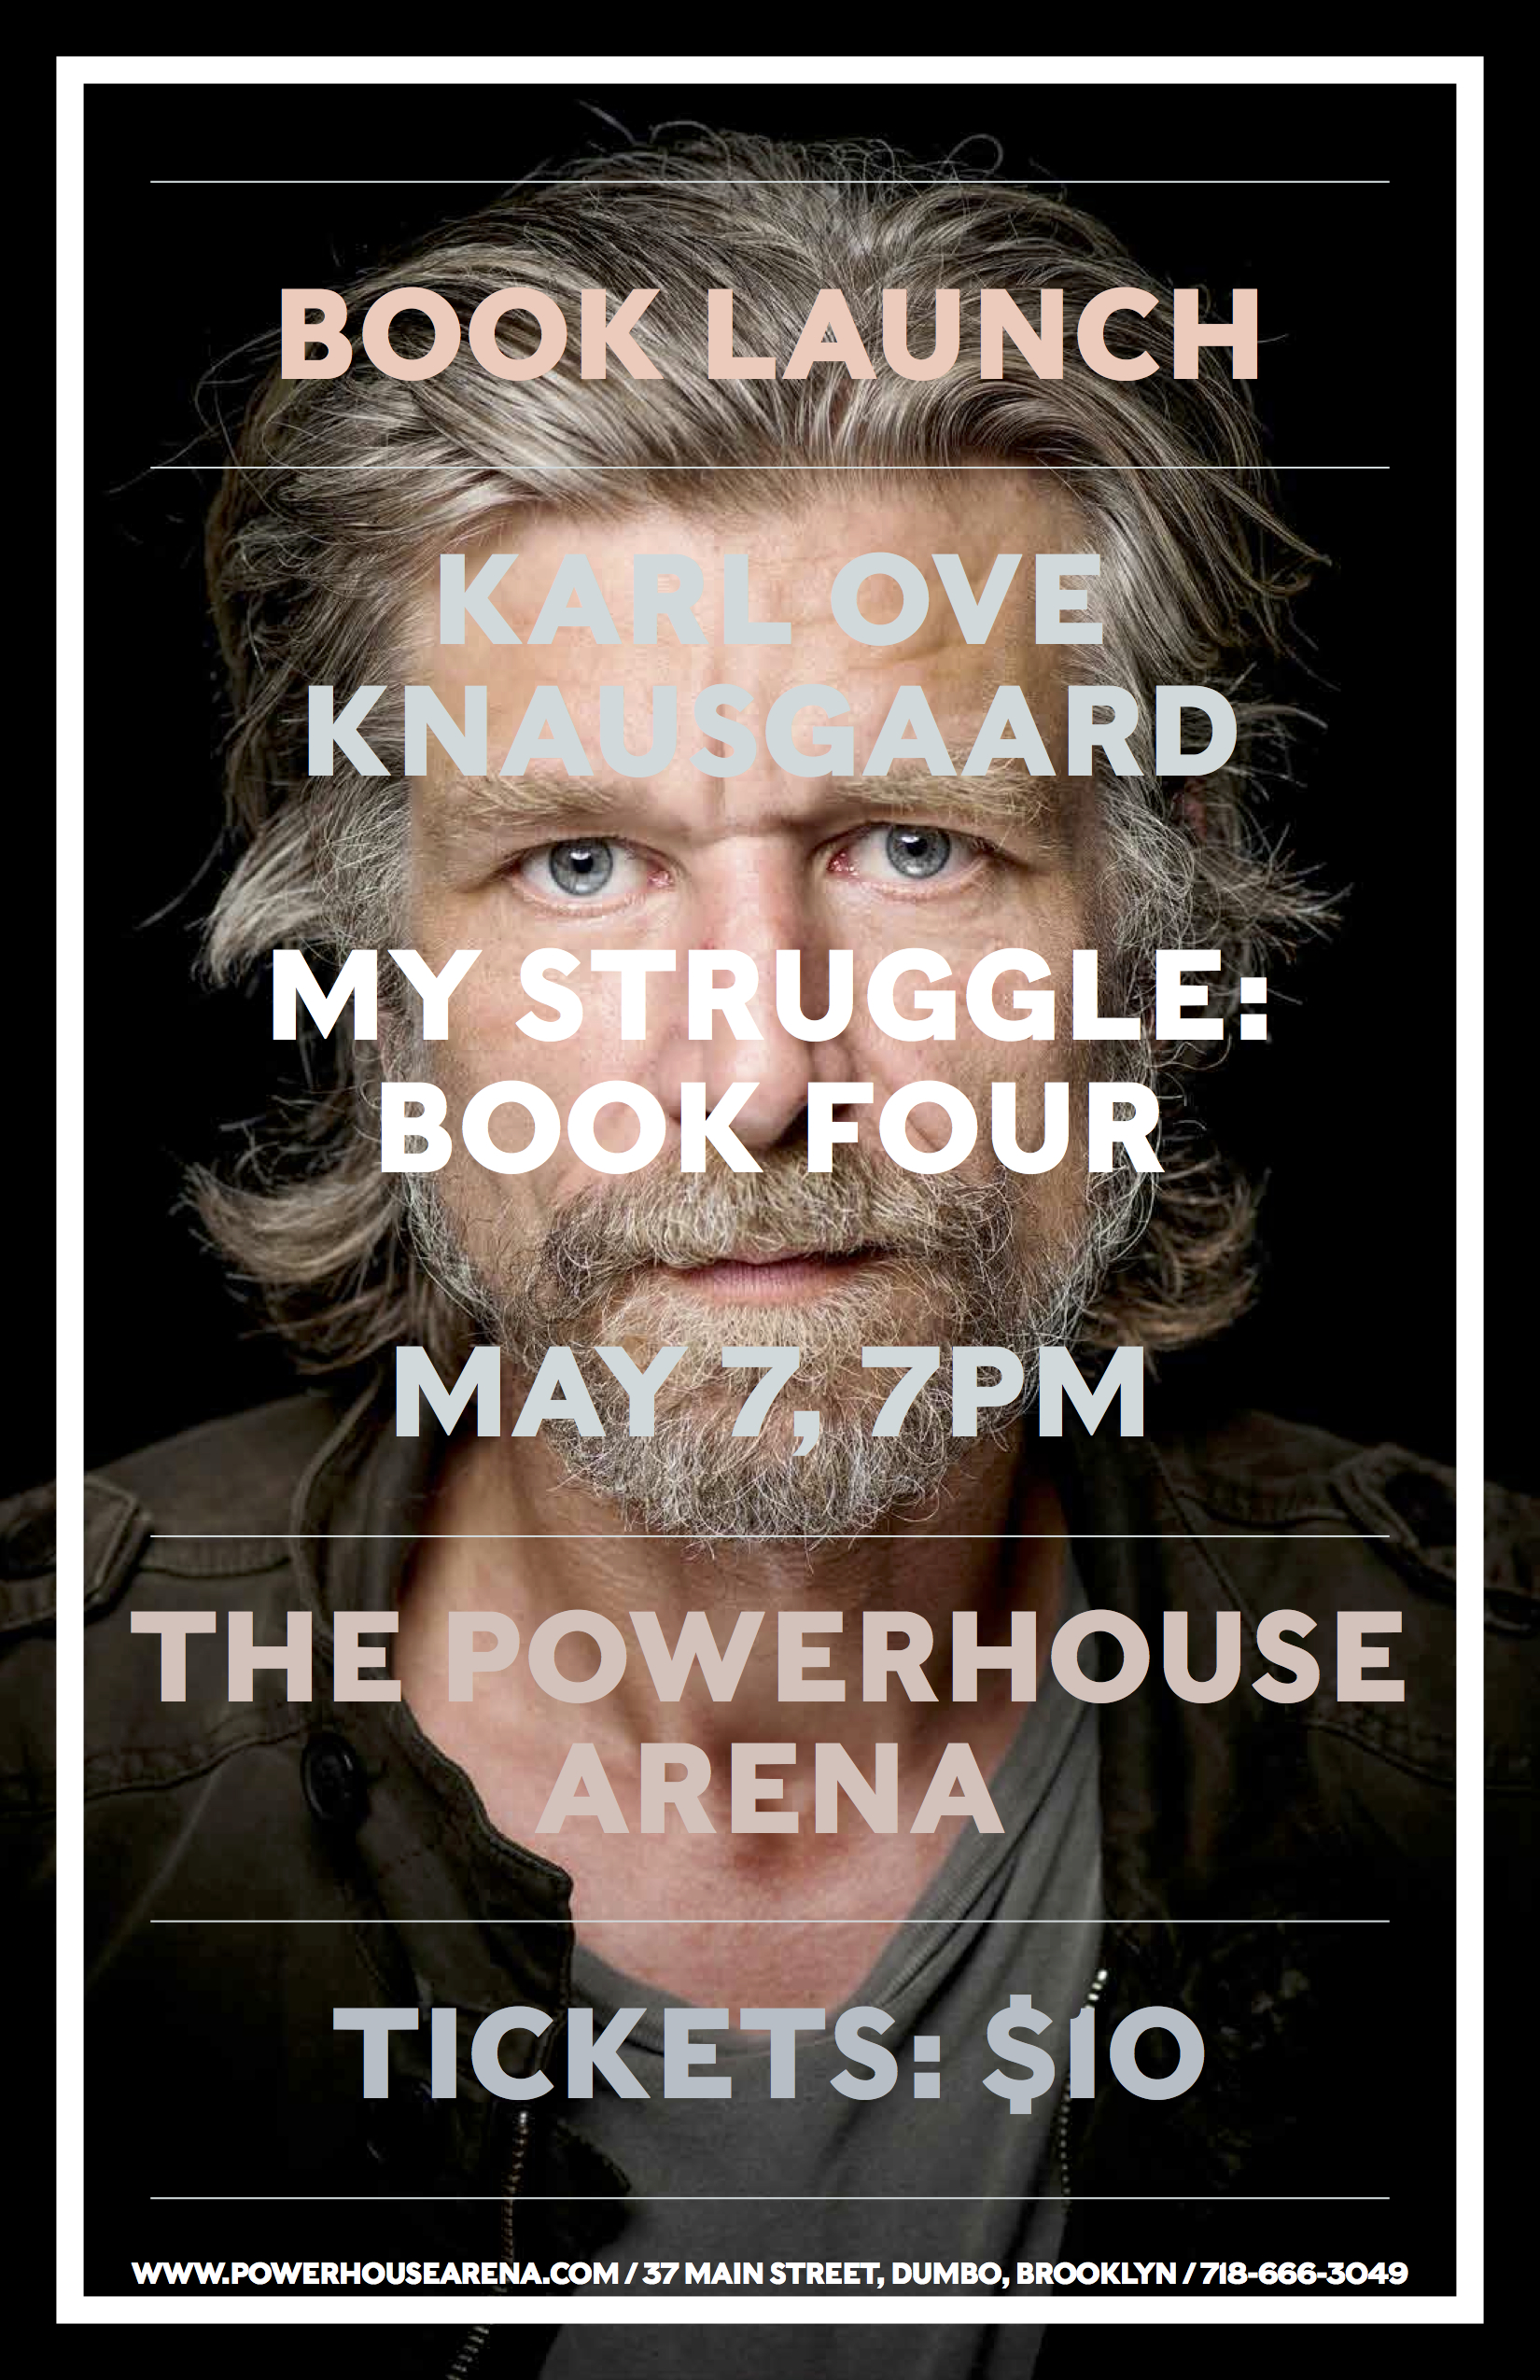 NYC Book Launch: My Struggle: Book Four by Karl Ove Knausgaard with Ben Lerner